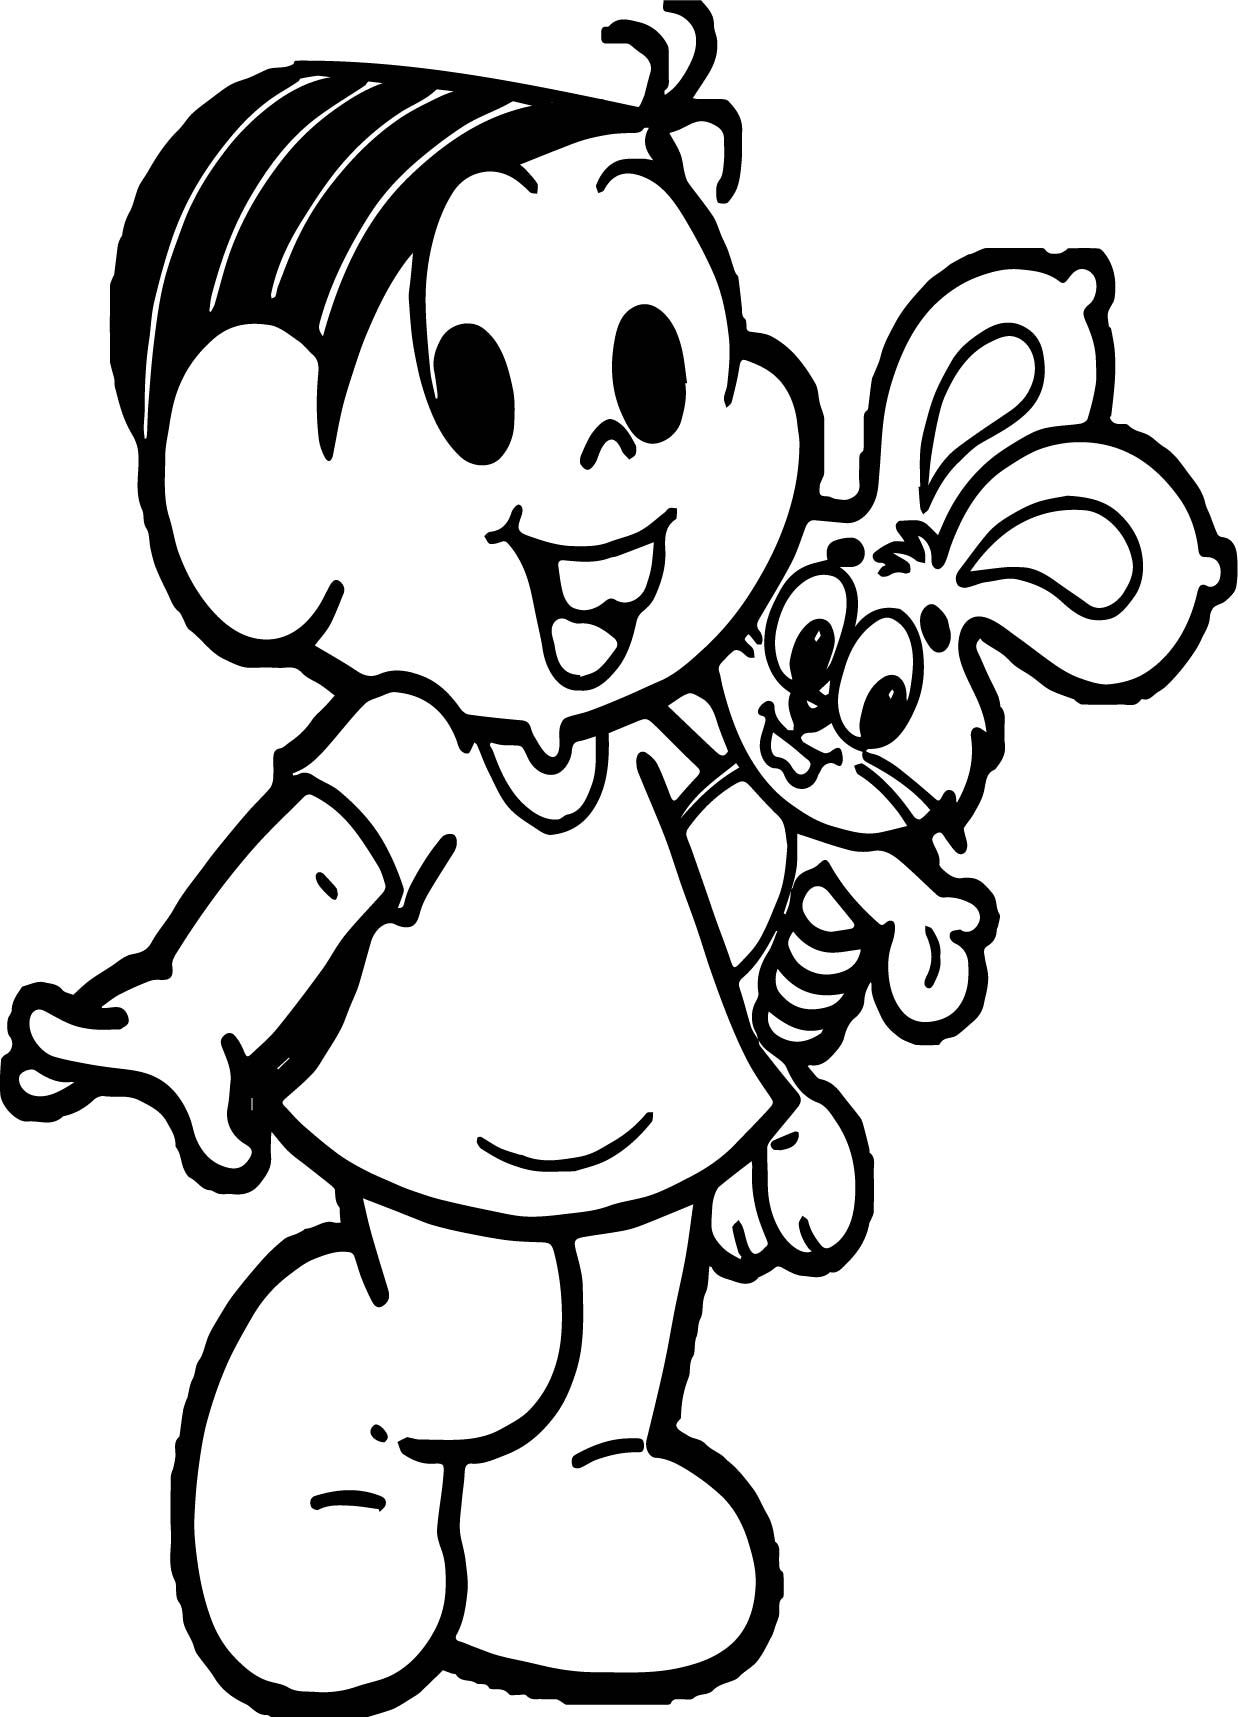 Awesome Turma Da Monica And Bunny Toy Coloring Page Turma Da Monica